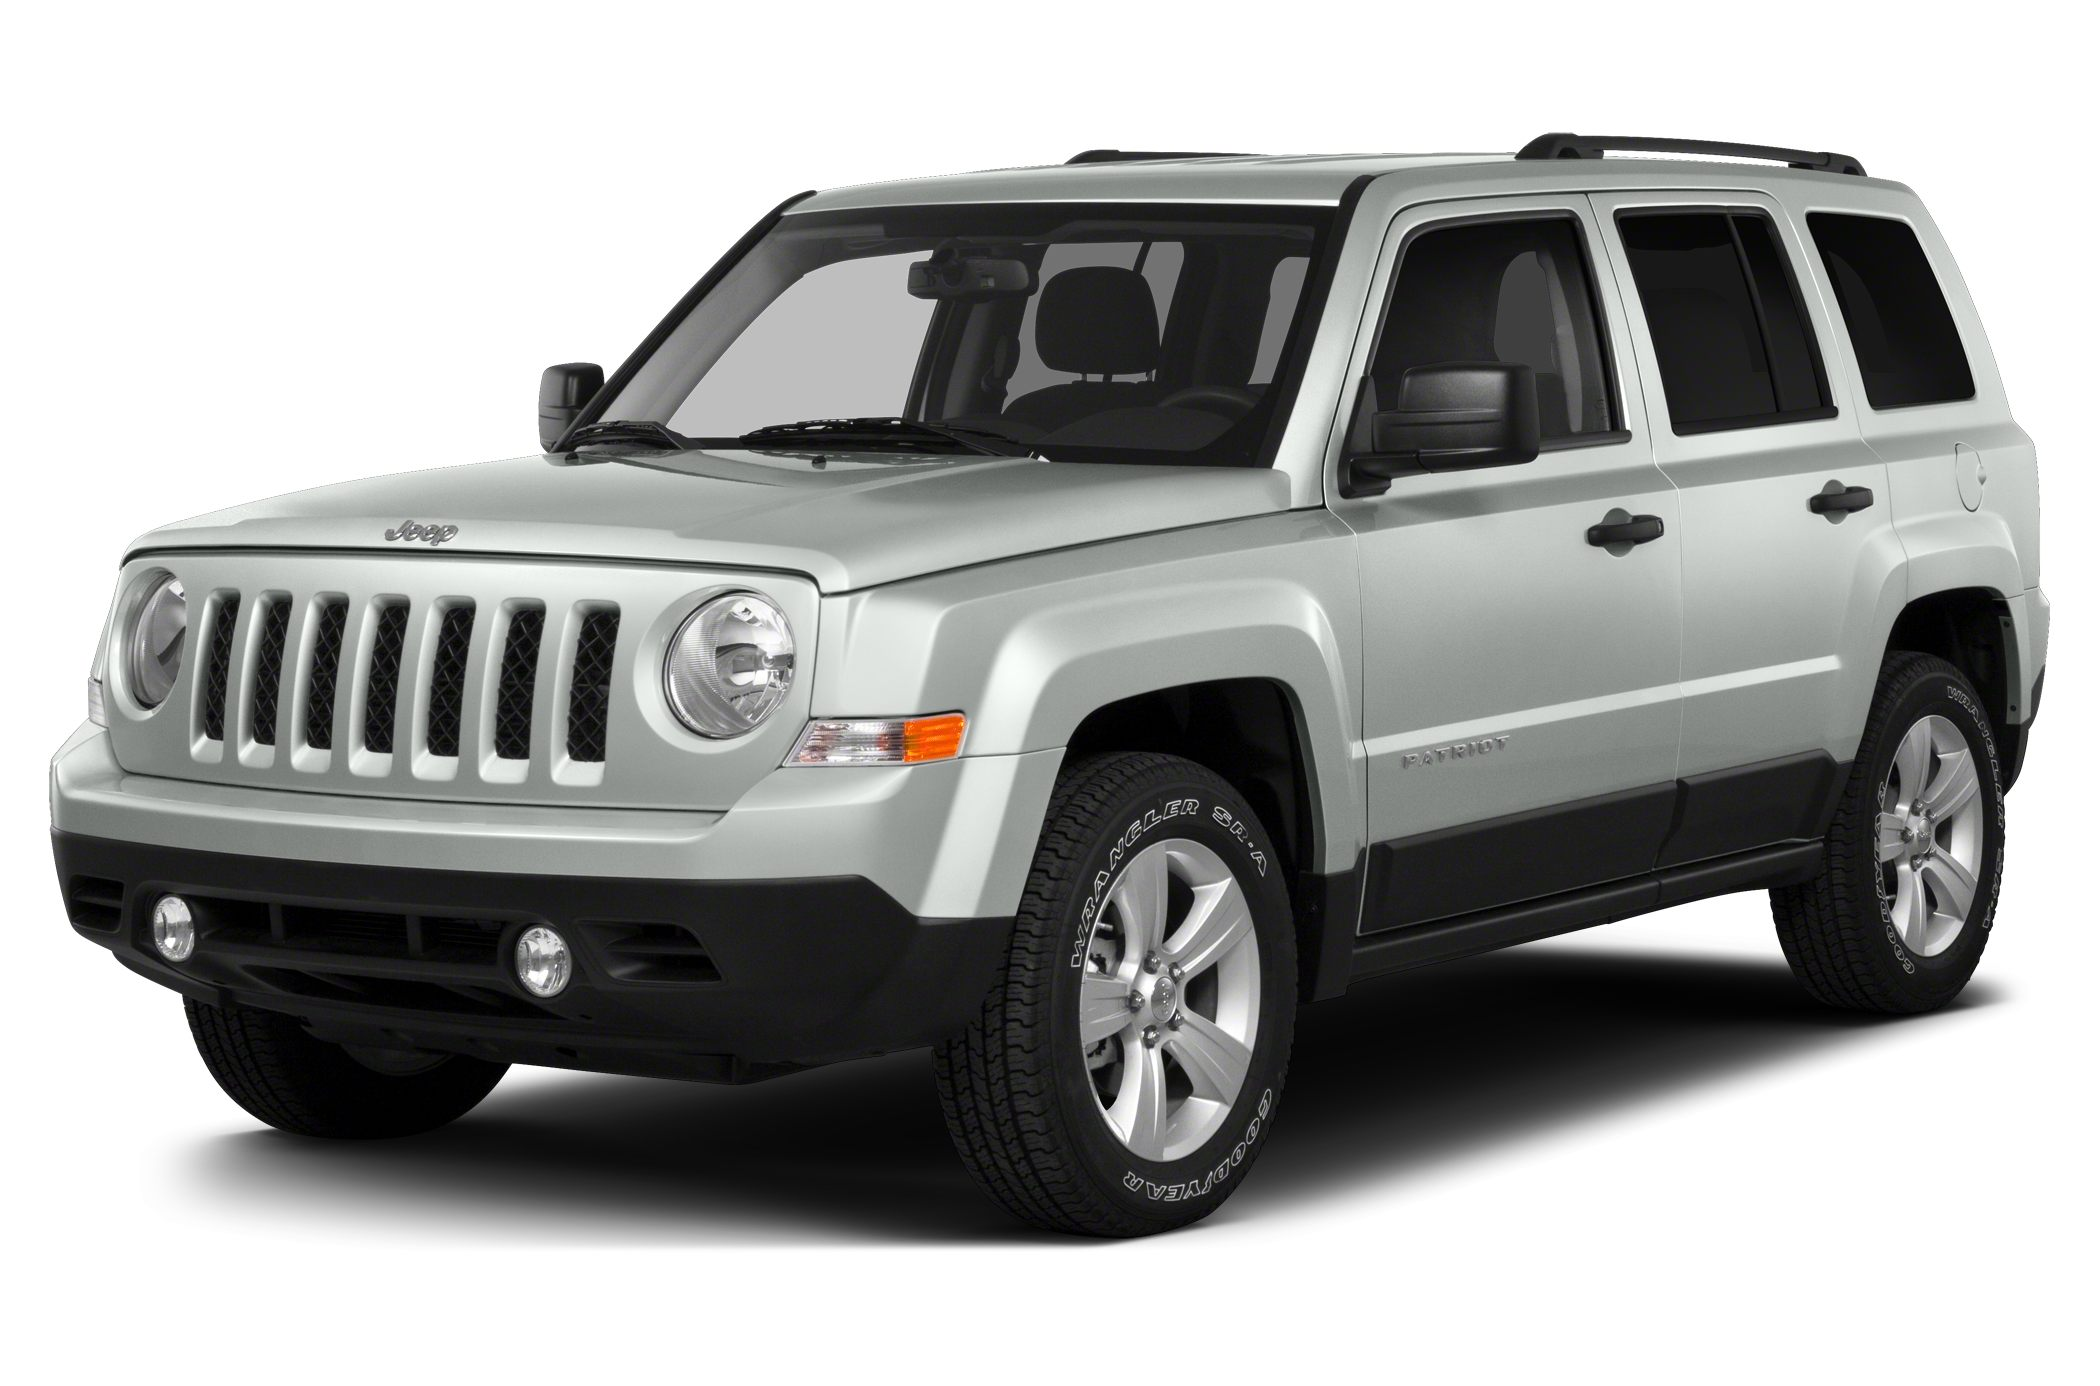 2015 Jeep Patriot Sport SUV for sale in Tacoma for $17,690 with 12 miles.